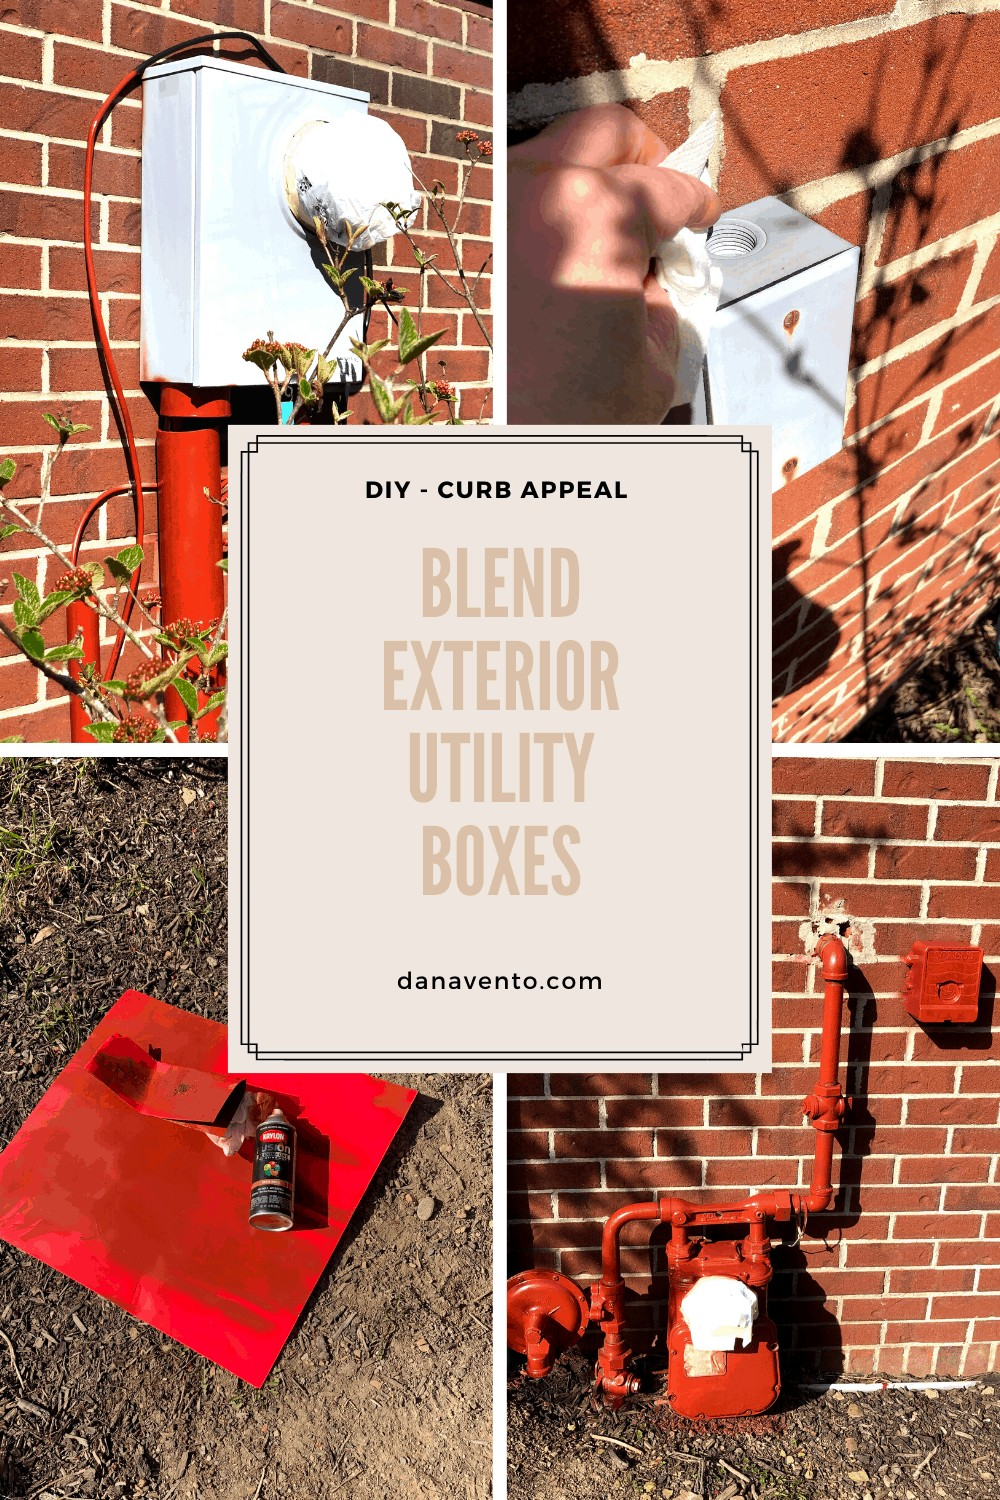 all images of diy utility boxes